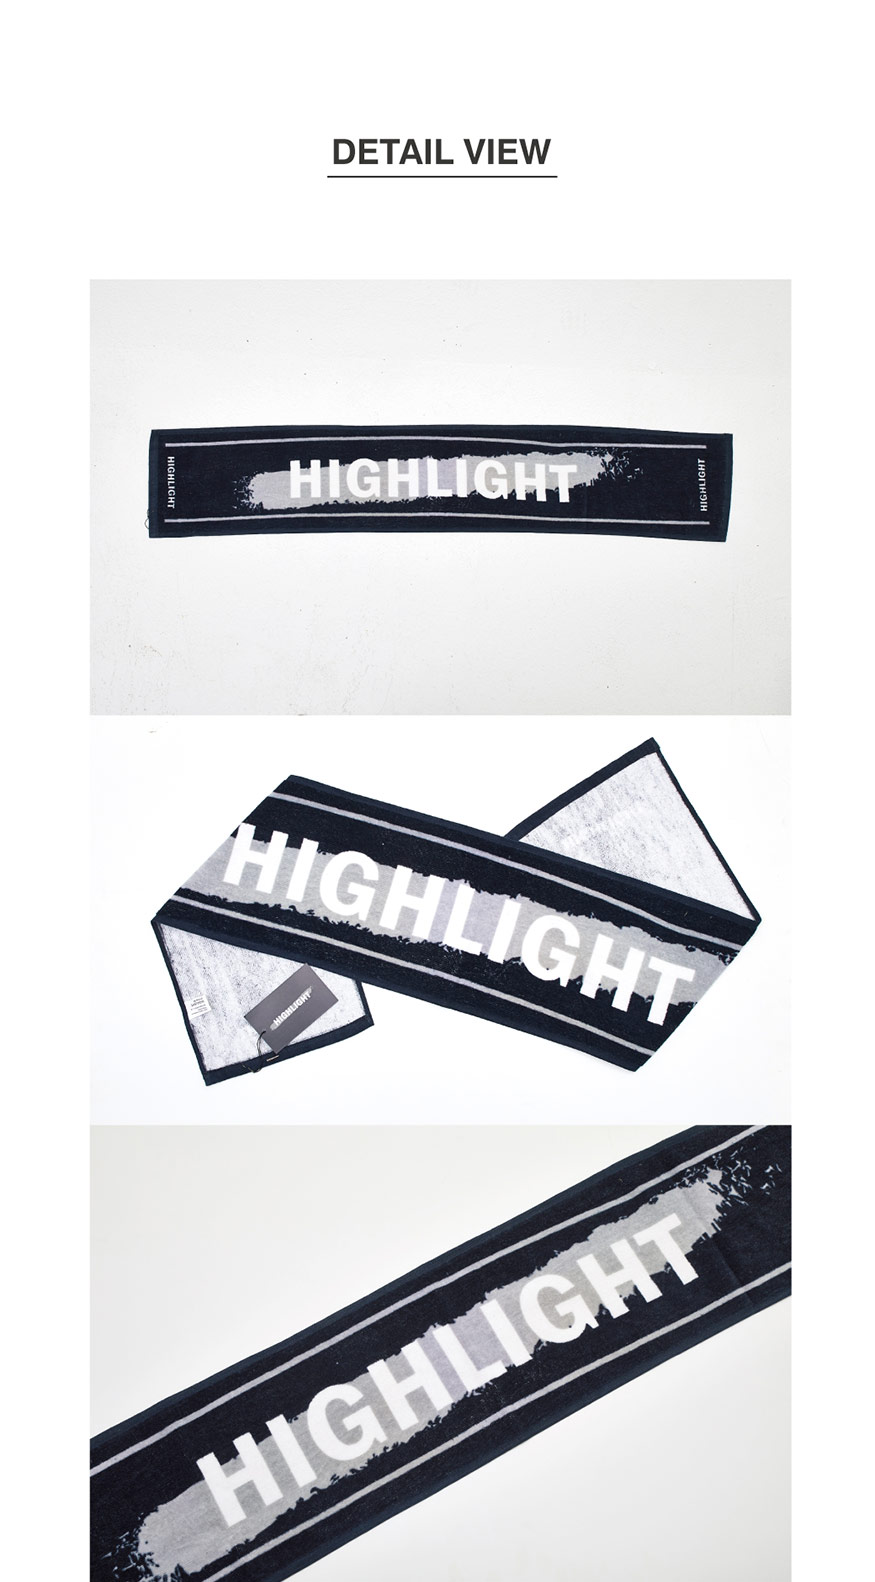 highlight_slogan1